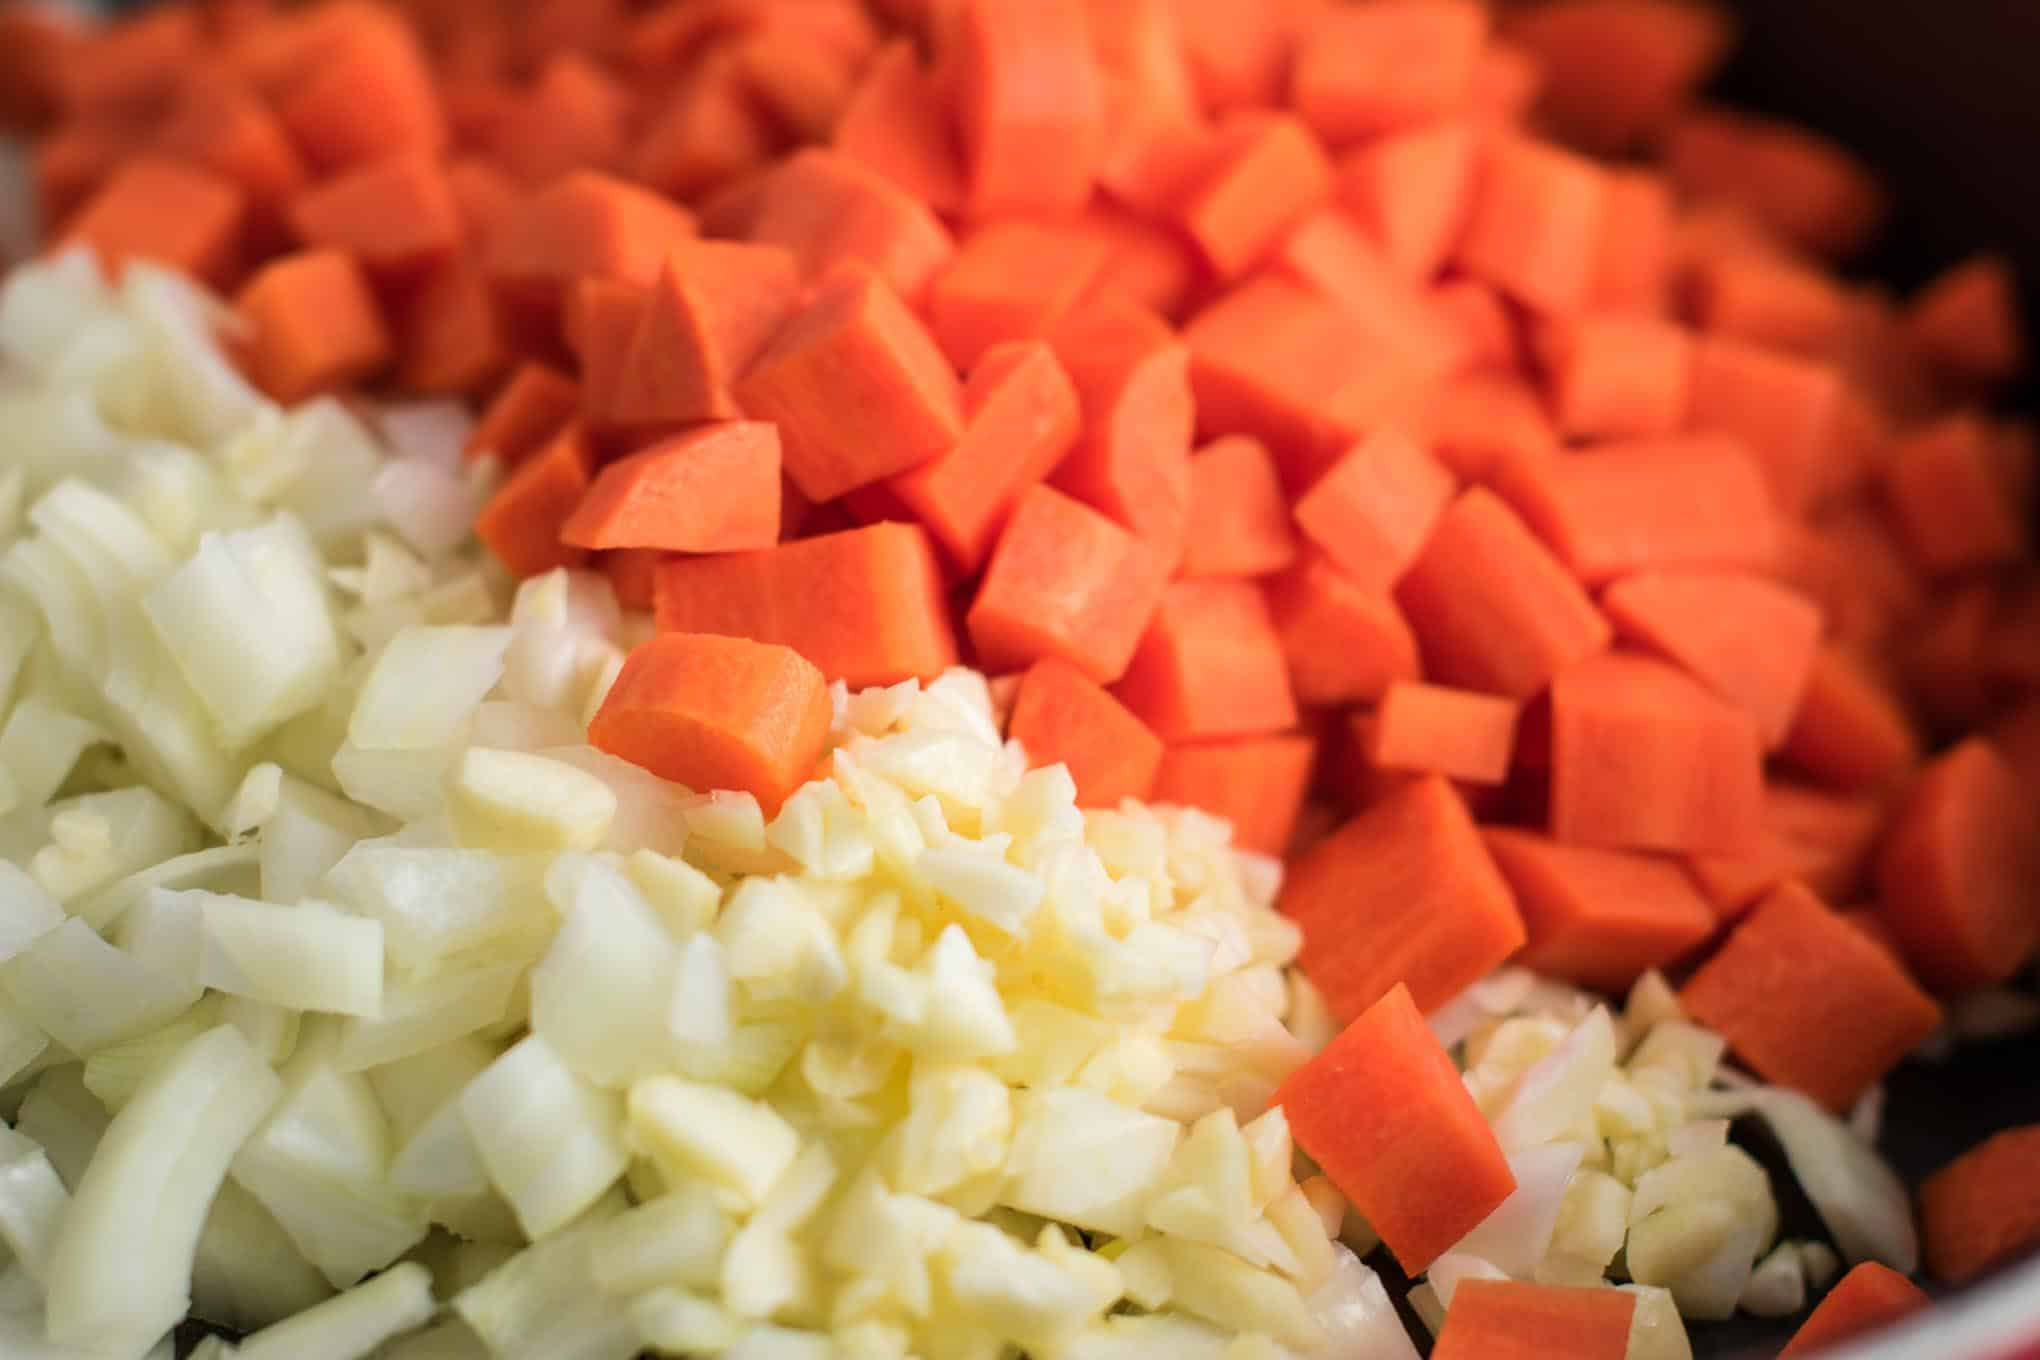 diced carrots, garlic, and onion